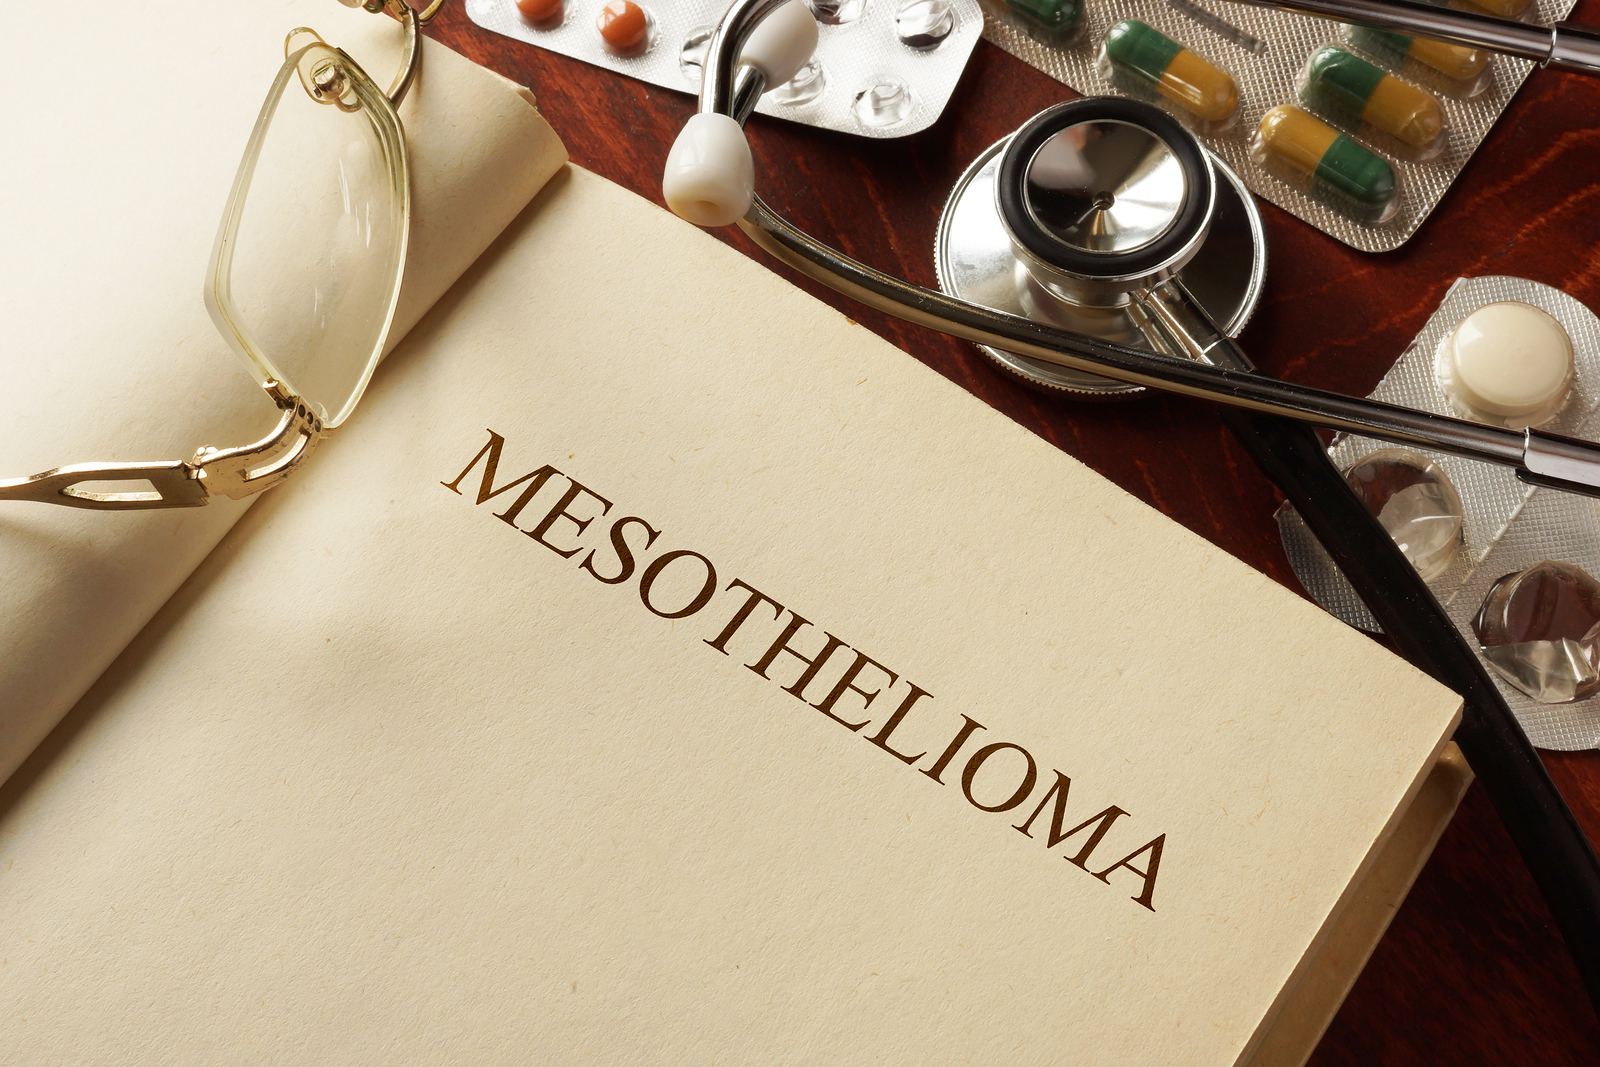 Mesothelioma Attorney Mesothelioma Lawyer Mesothelioma Legal Top 10 Best Mesothelioma Lawyers And Attorney In Massachusetts